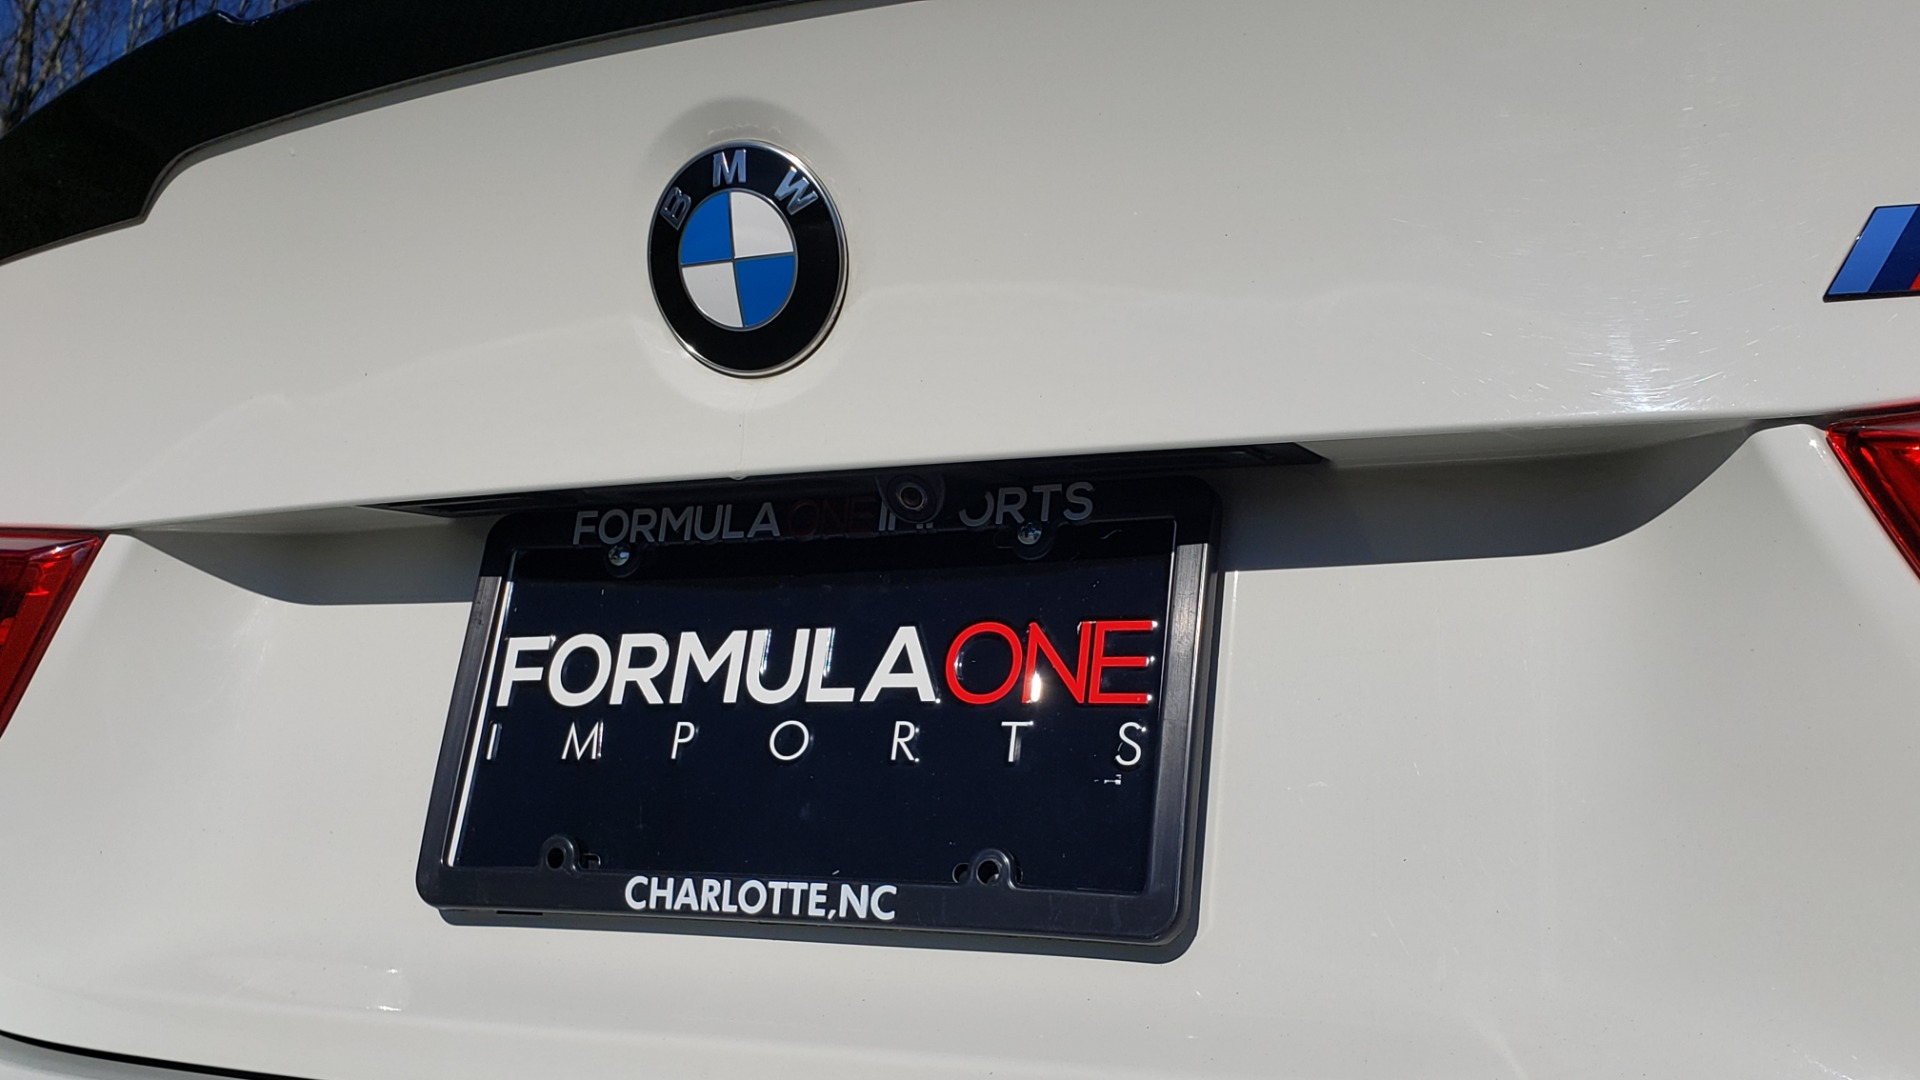 Used 2018 BMW M4 COMP PKG / EXEC / M-DRIVER / PARK CNTRL / ACTIVE BLIND SPOT for sale Sold at Formula Imports in Charlotte NC 28227 30